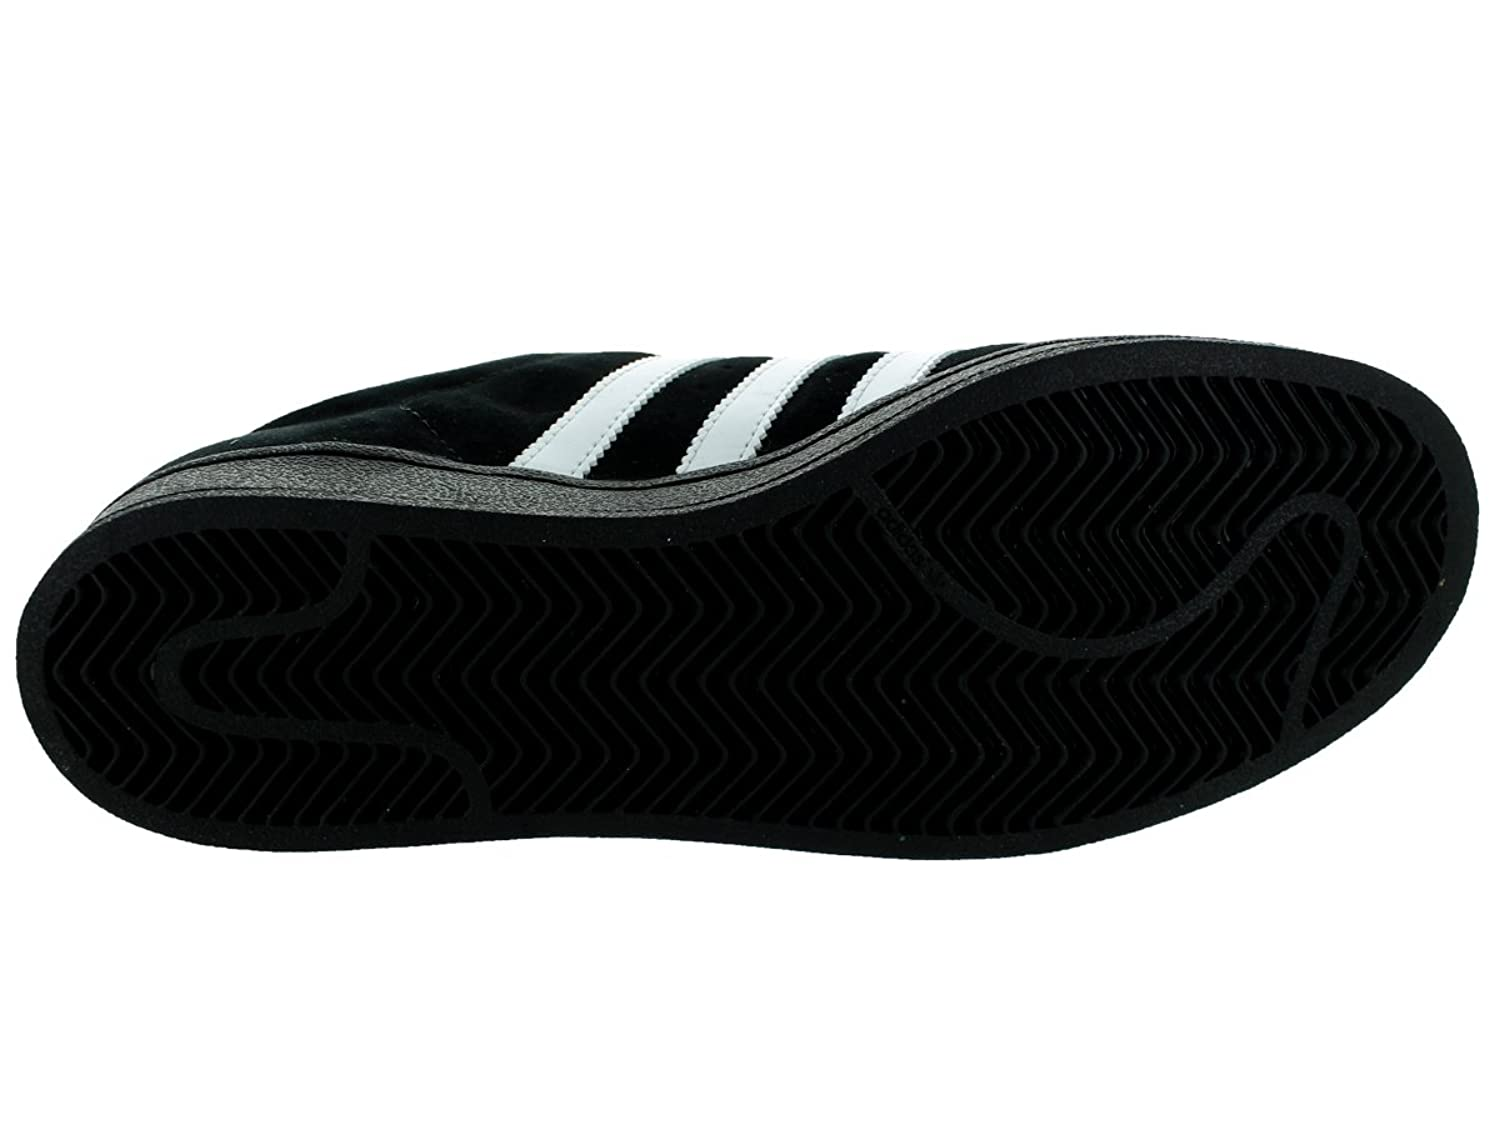 shoes for training sports amp casual lifestyle adidas us